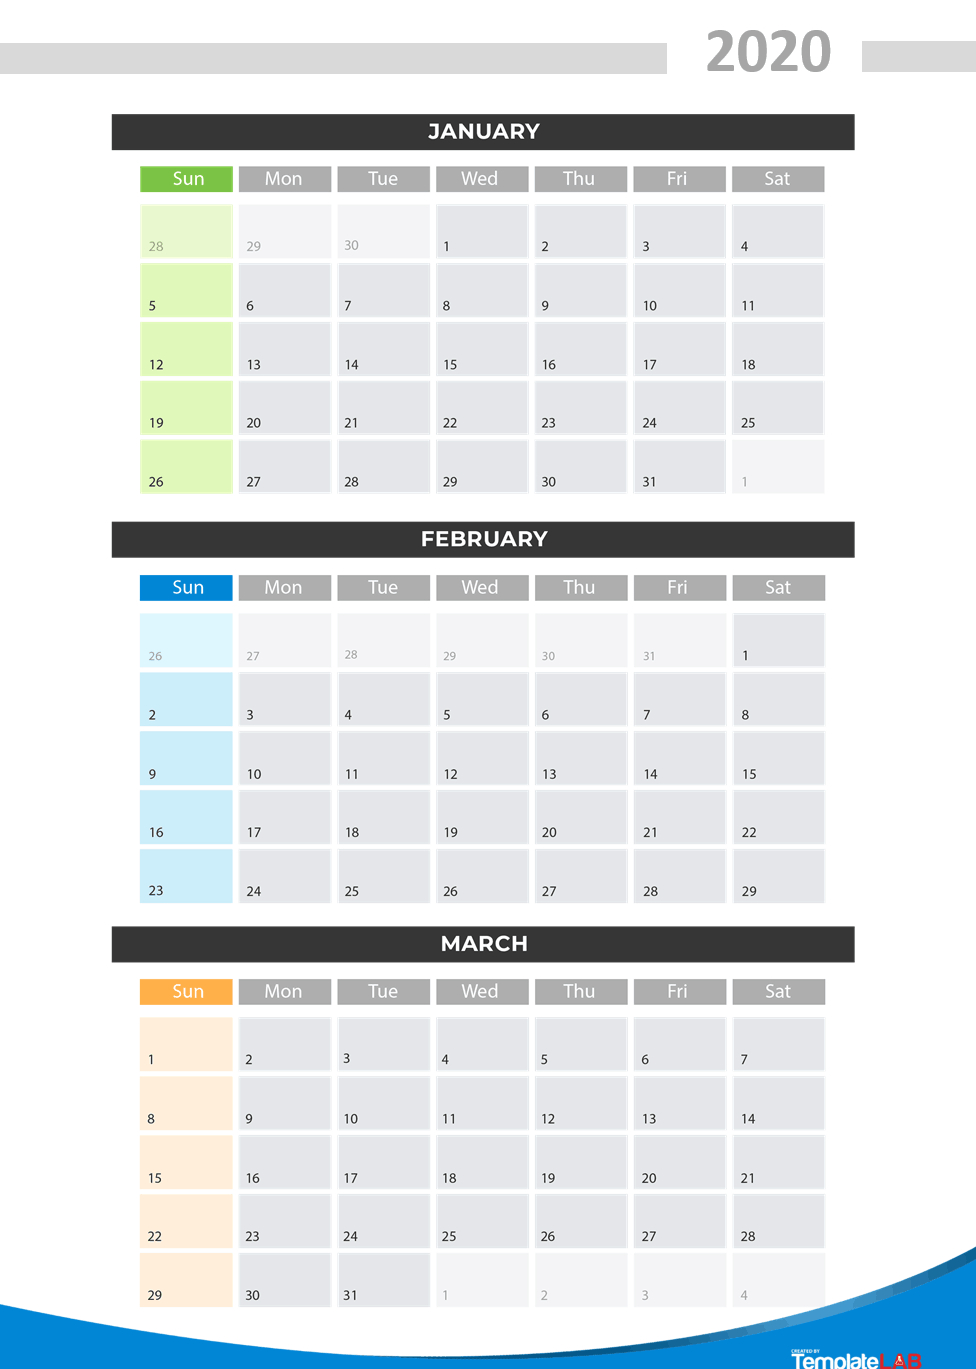 2020 Printable Calendars [Monthly, With Holidays, Yearly] ᐅ throughout 2020 Quarterly Calendar Template Excel